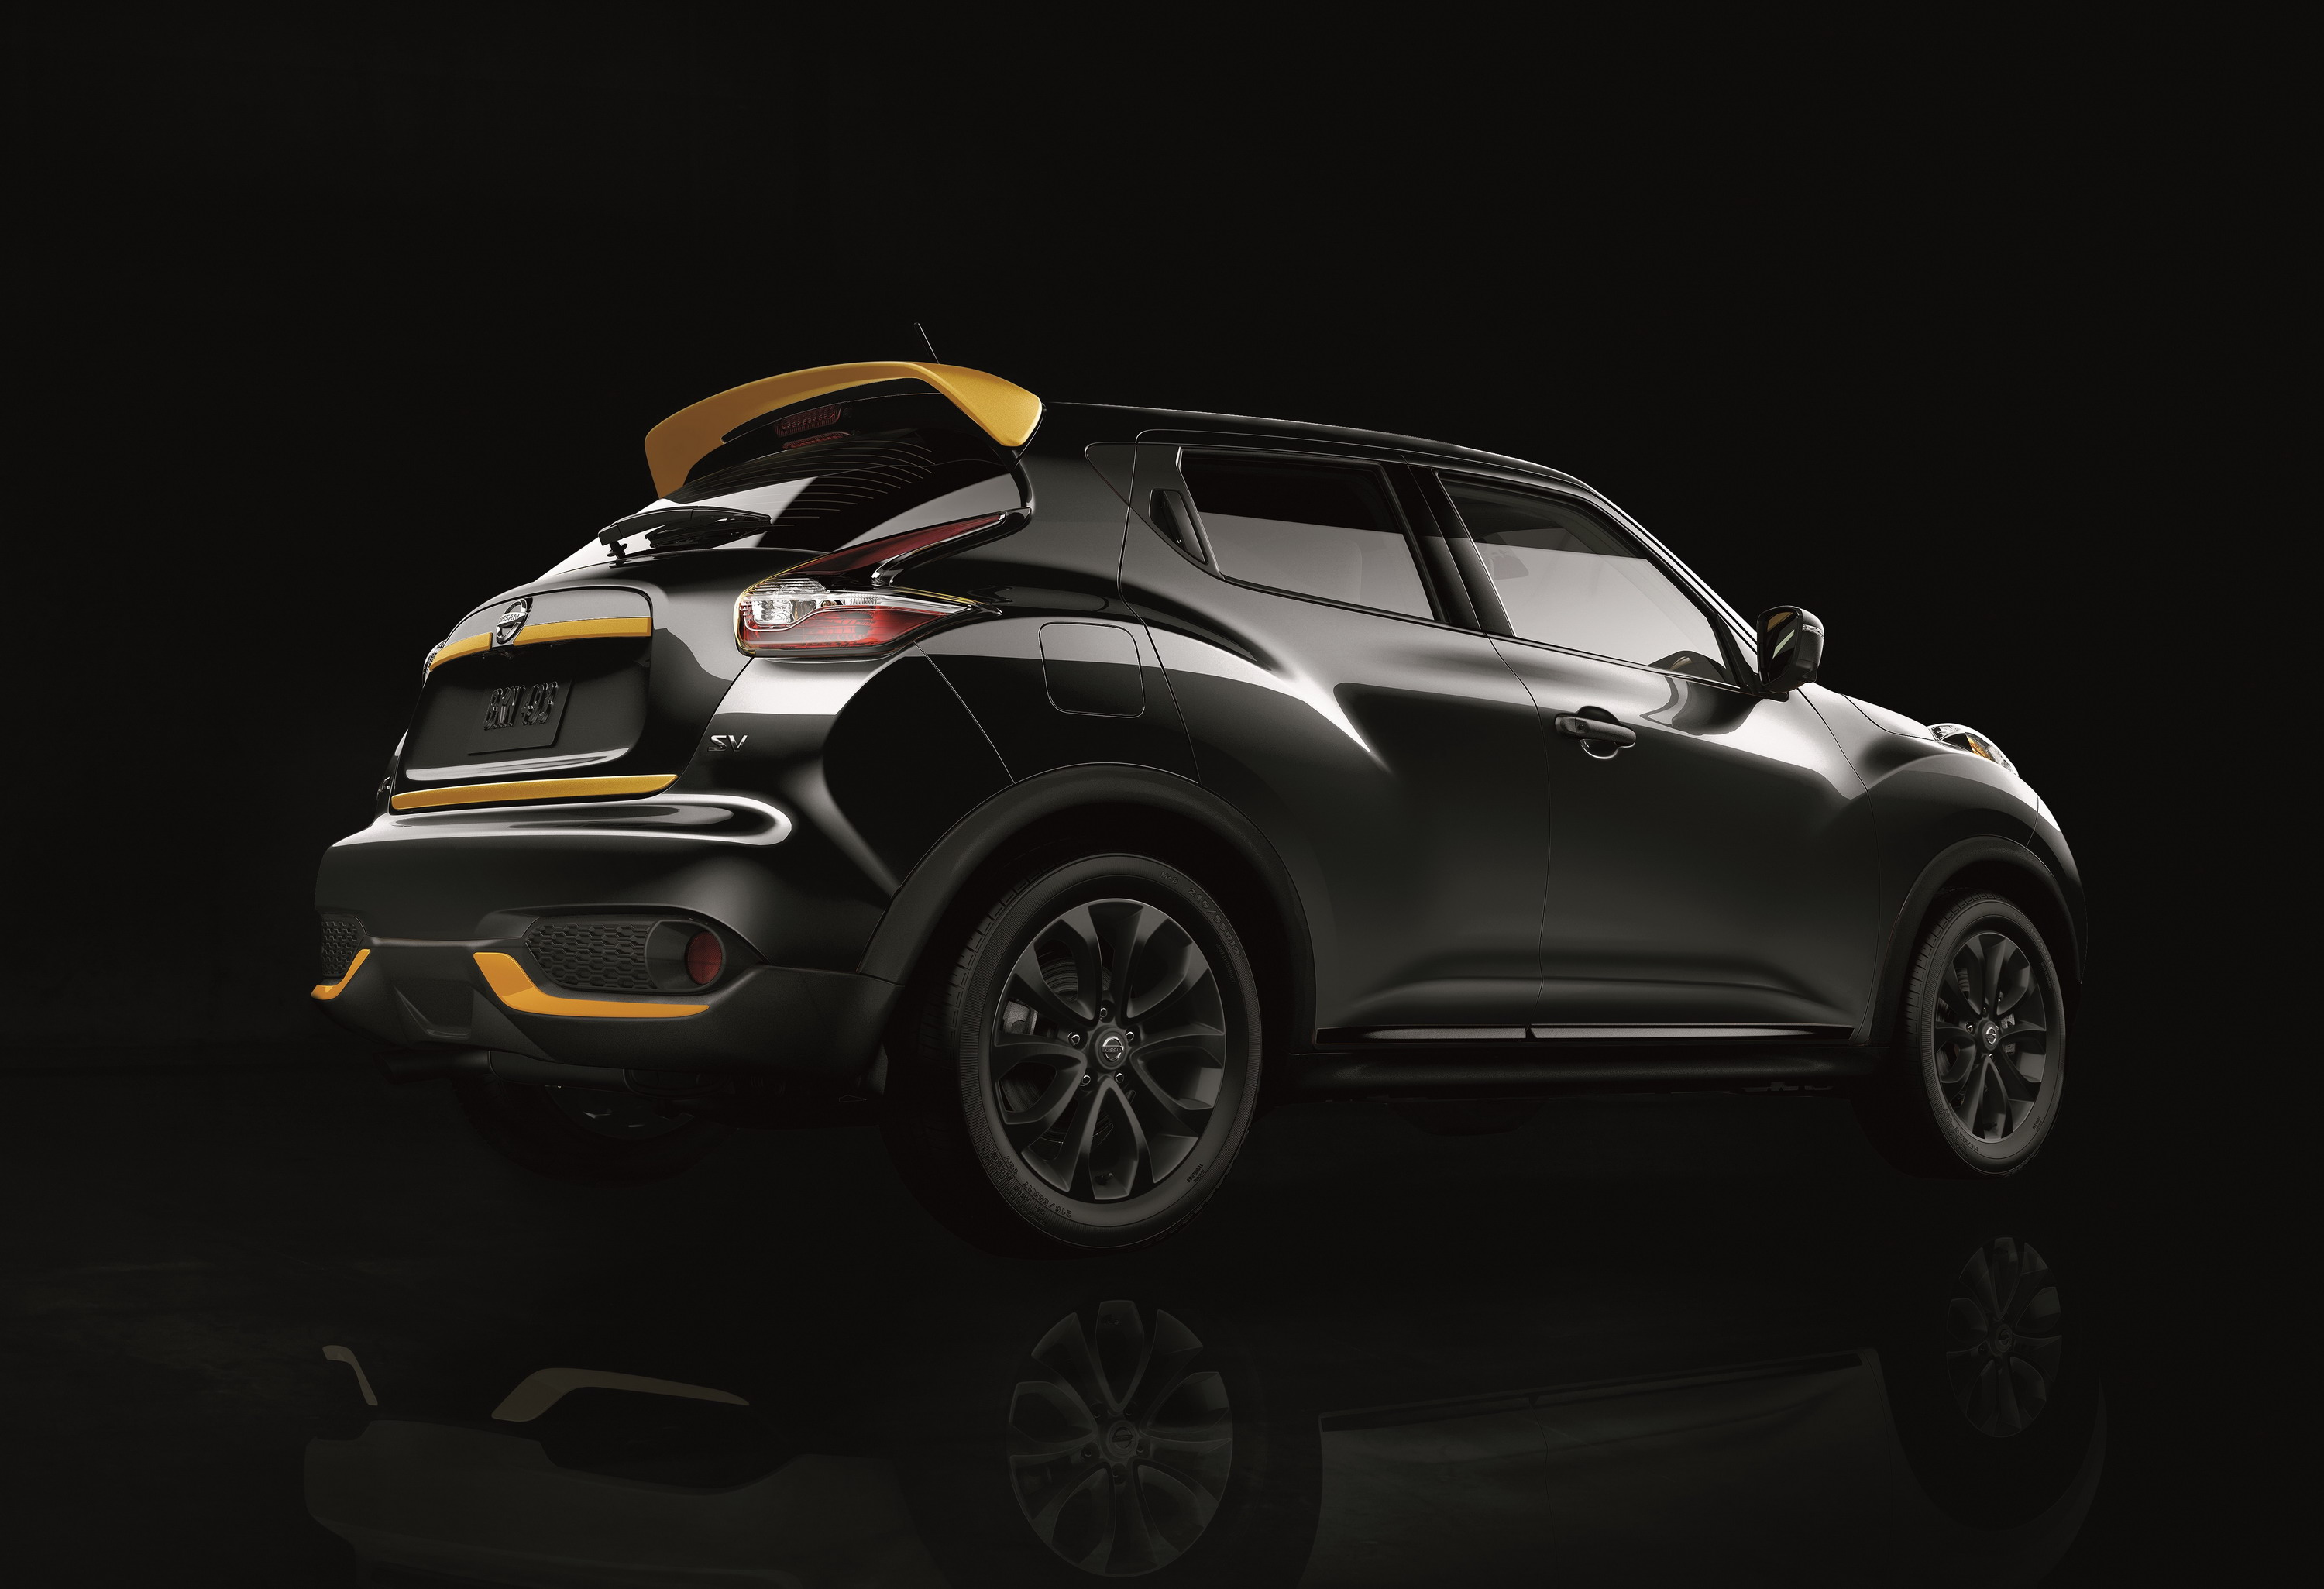 r be review nismo gt pictures built hp may nissan juke gallery videos engine